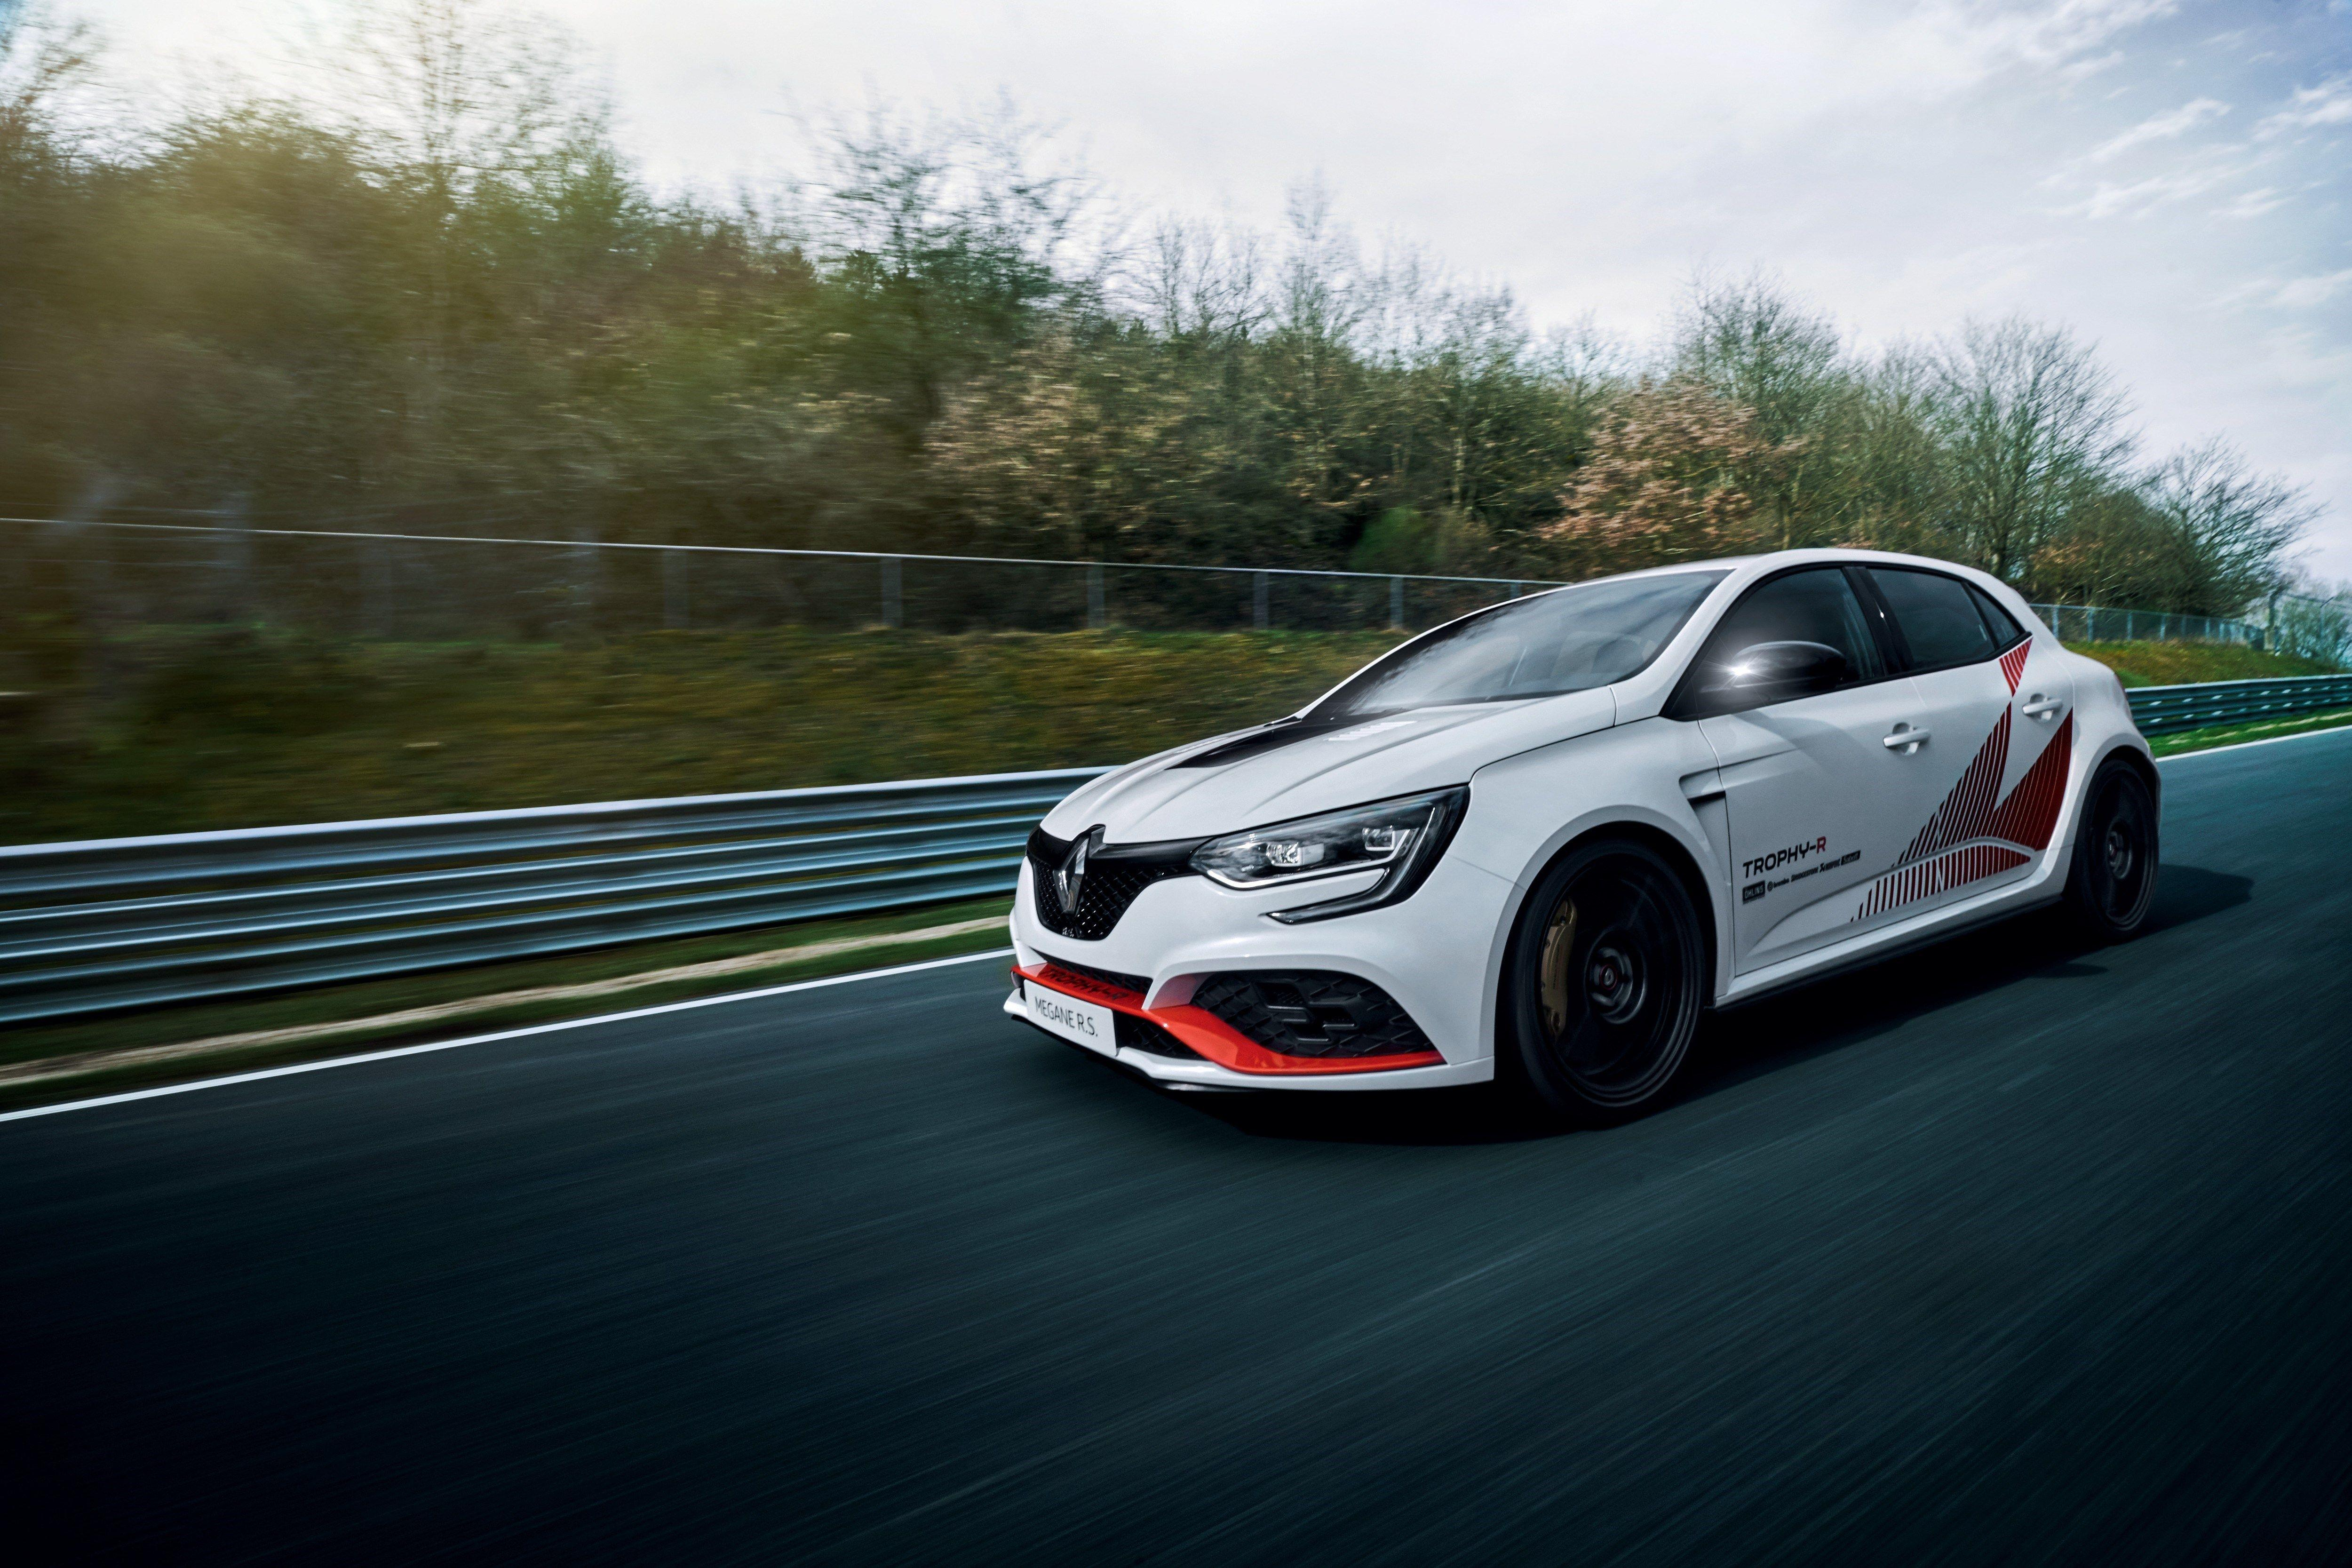 17 of the Fastest Four-Doors Around the Nurburgring